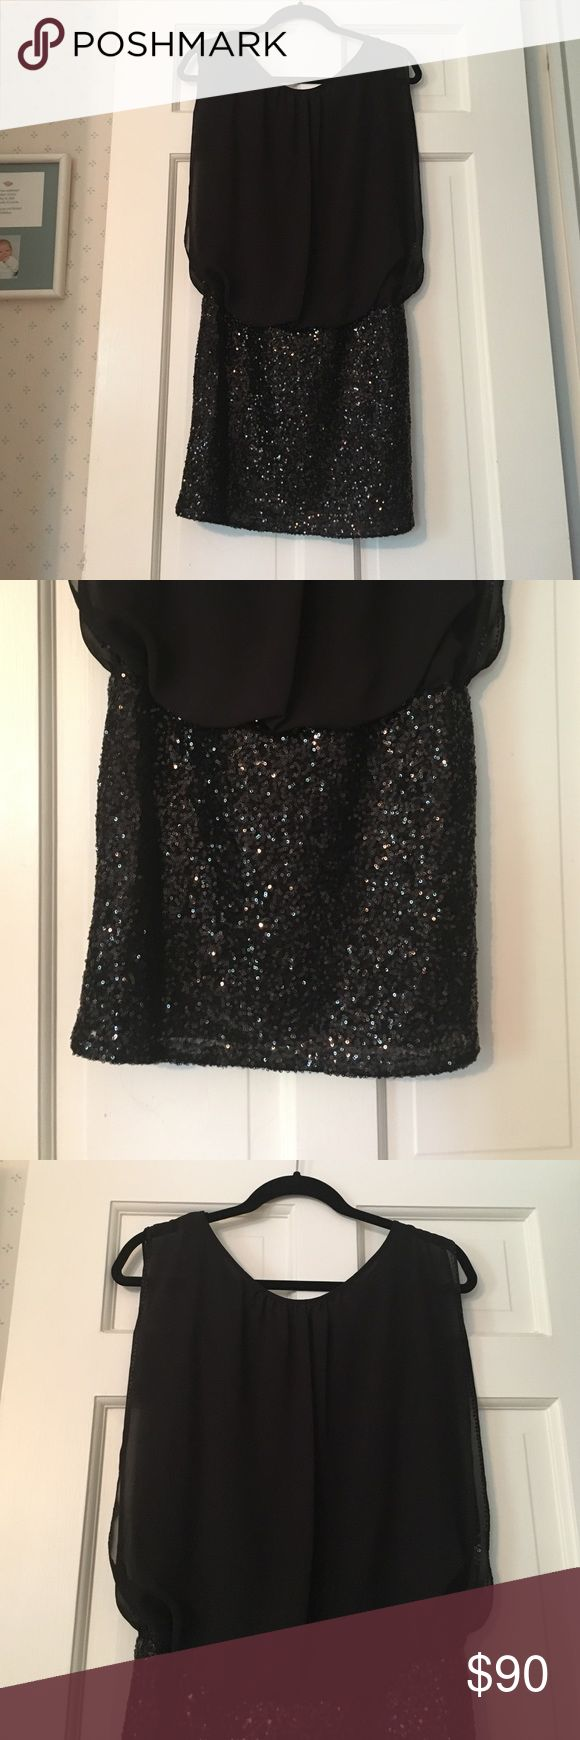 Aidan Mattox Sequined Combo Dress Has only been worn once. In excellent condition. Great for special occasions. Aidan Mattox Dresses